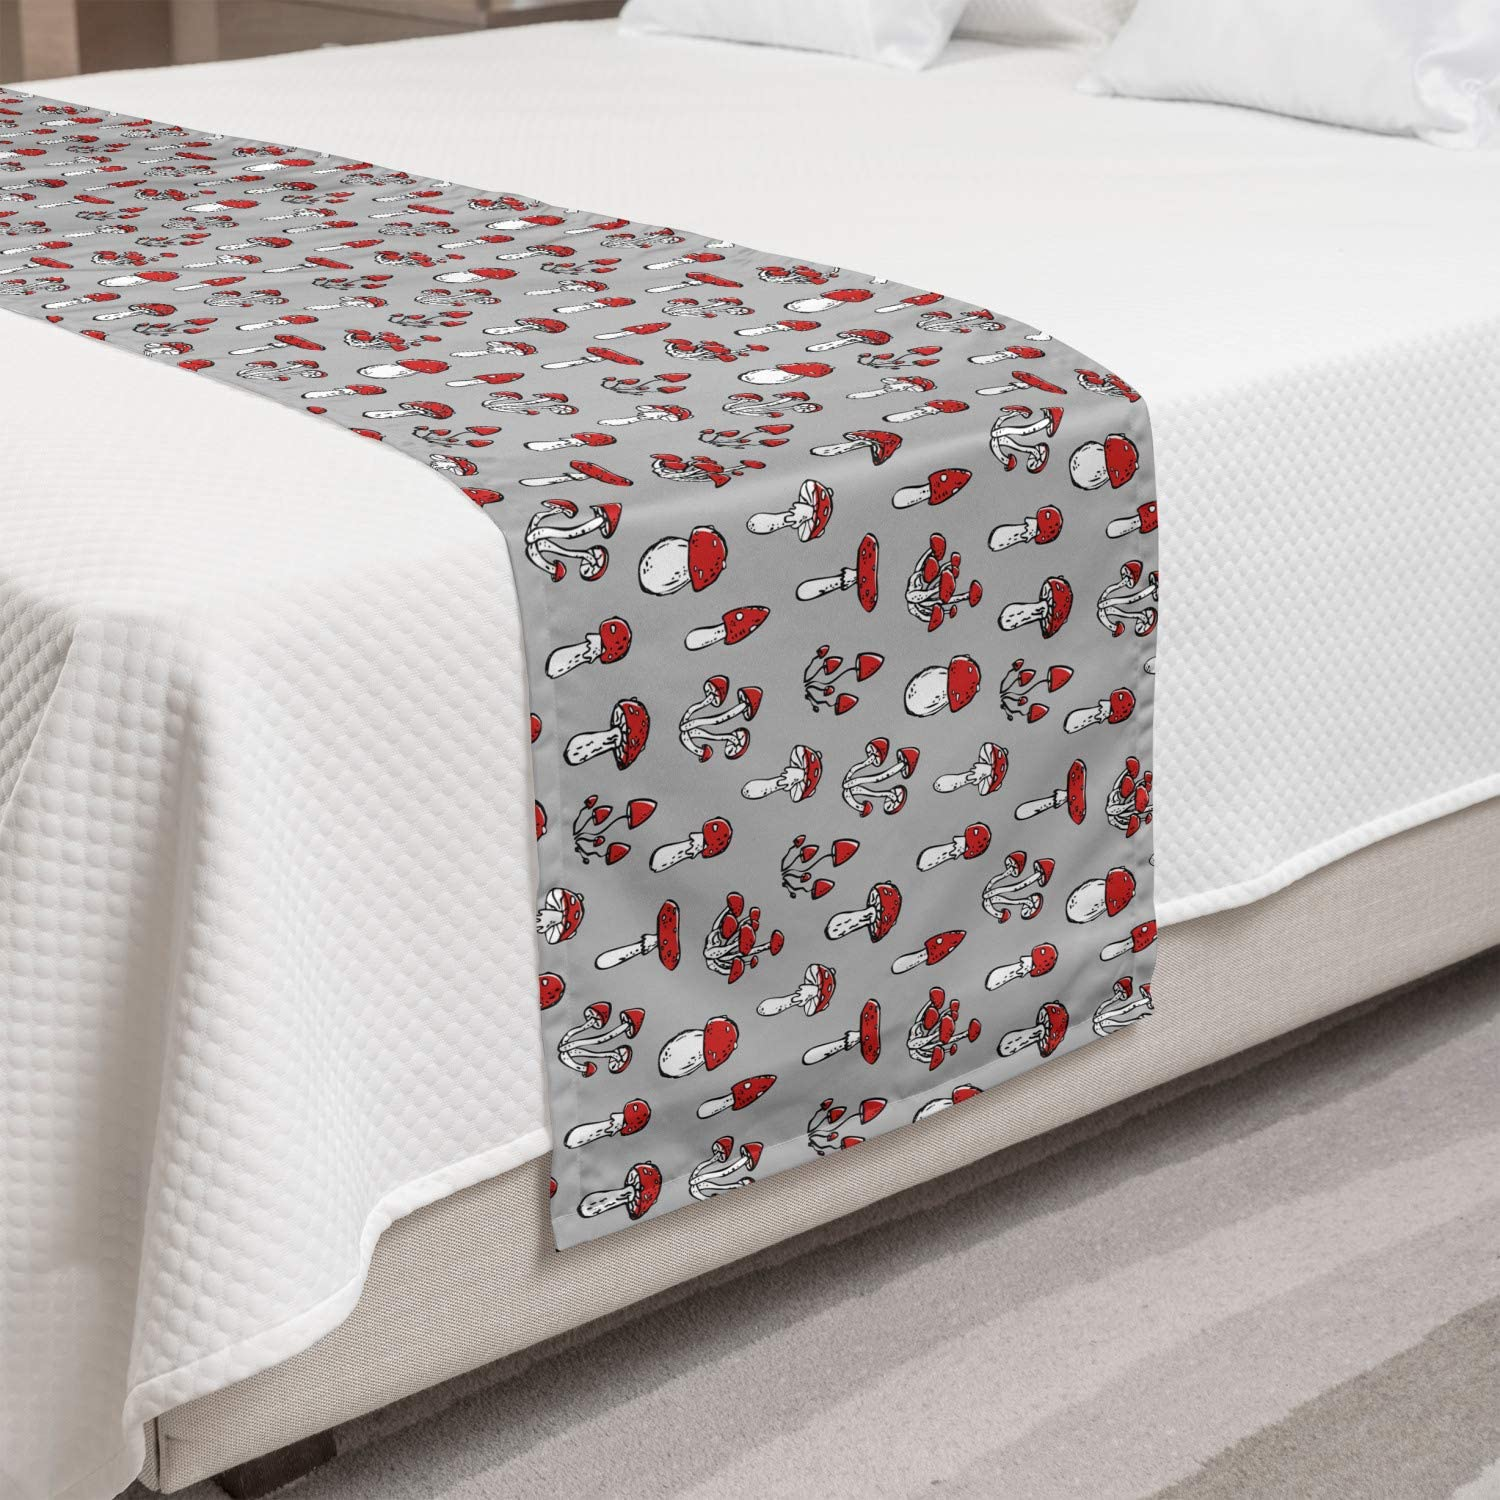 Decorative Accent Bedding Scarf for Hotels Homes and Guestrooms Ambesonne Mushroom Bed Runner Pattern with Amanita Fungus on Neutral Background Print Pale Taupe Vermilion